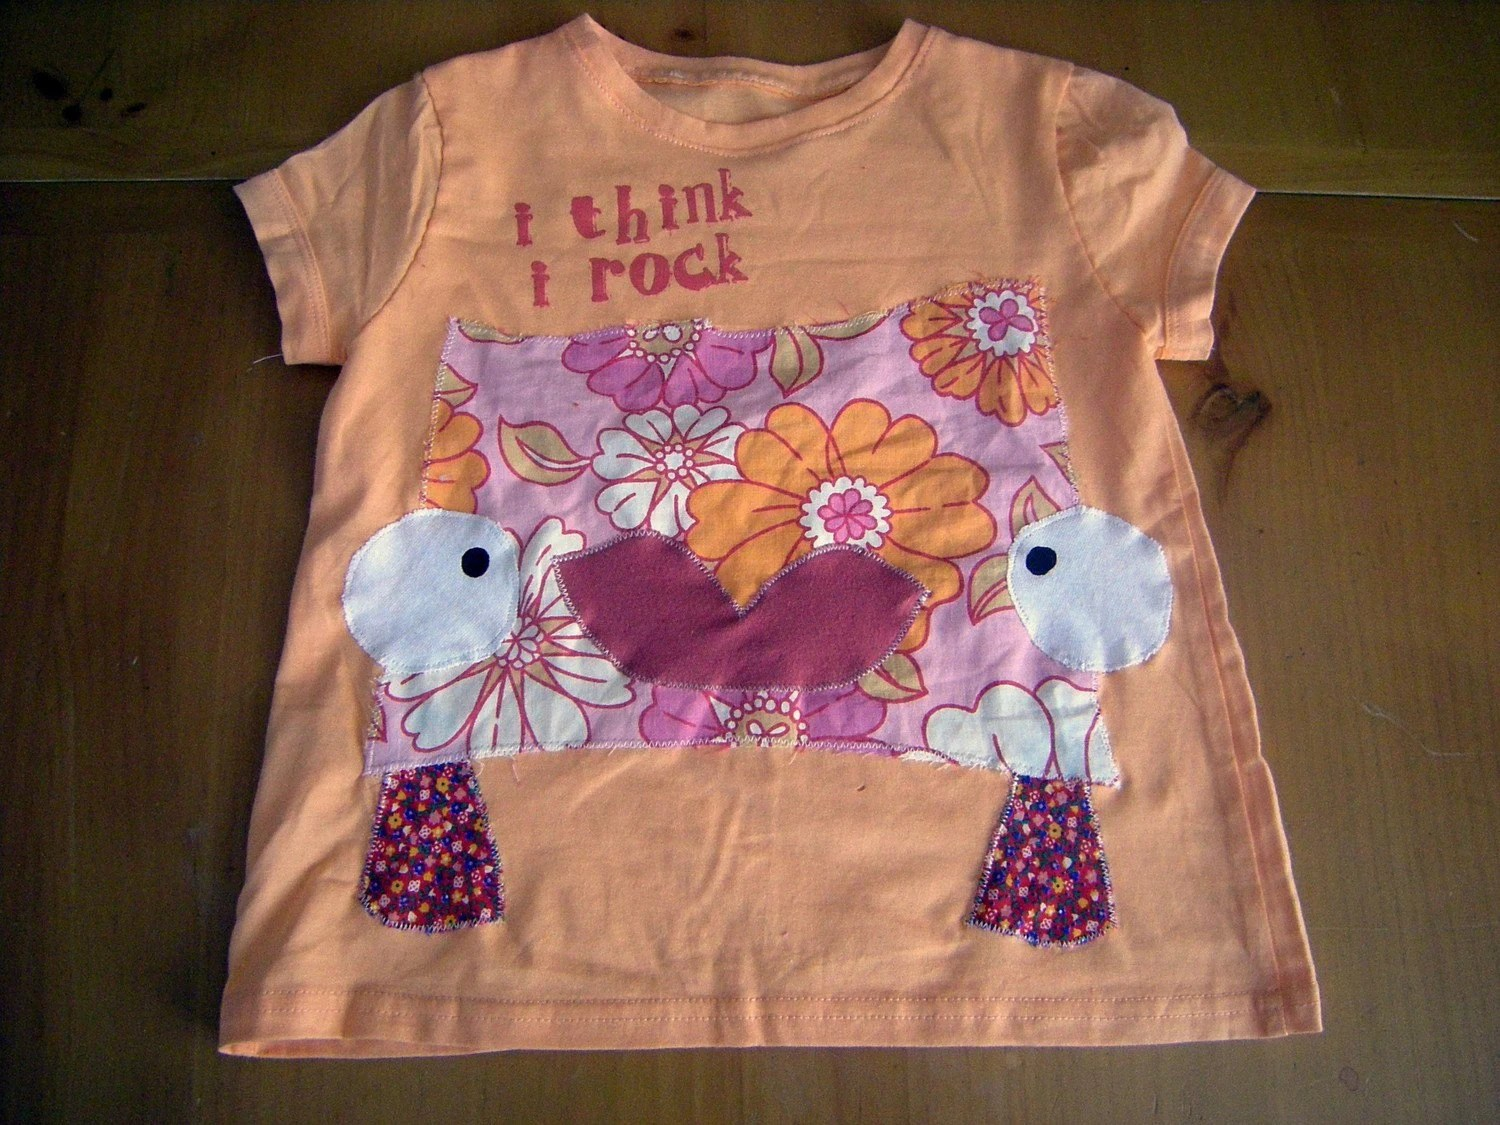 PINKY PETUNIA recycled tee - 5 years